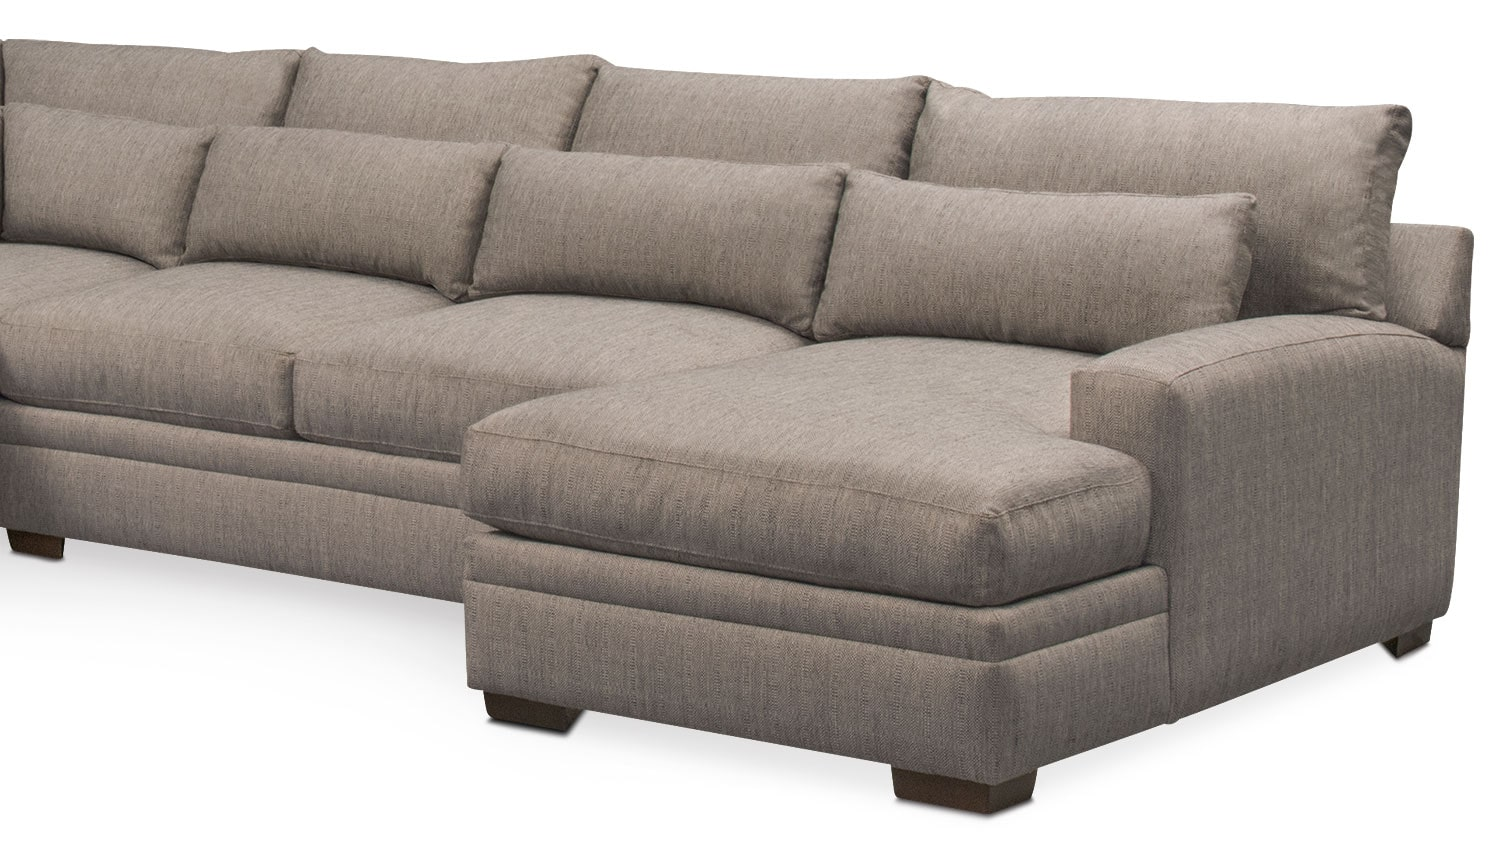 Winston comfort 4 piece sectional with right facing chaise for 4 piece sectional with chaise